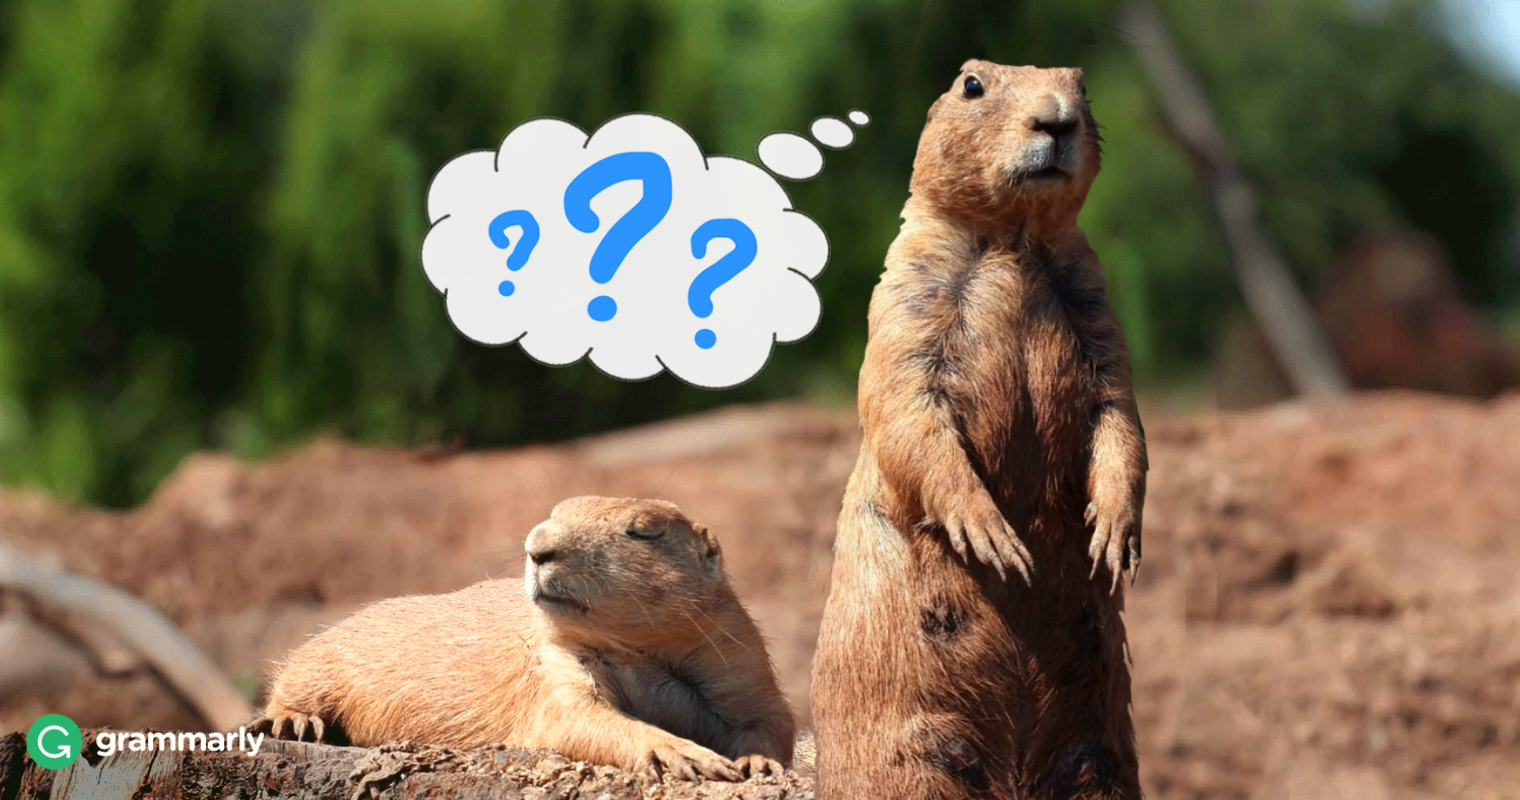 Why Is Groundhog Day a Holiday? An Investigation image